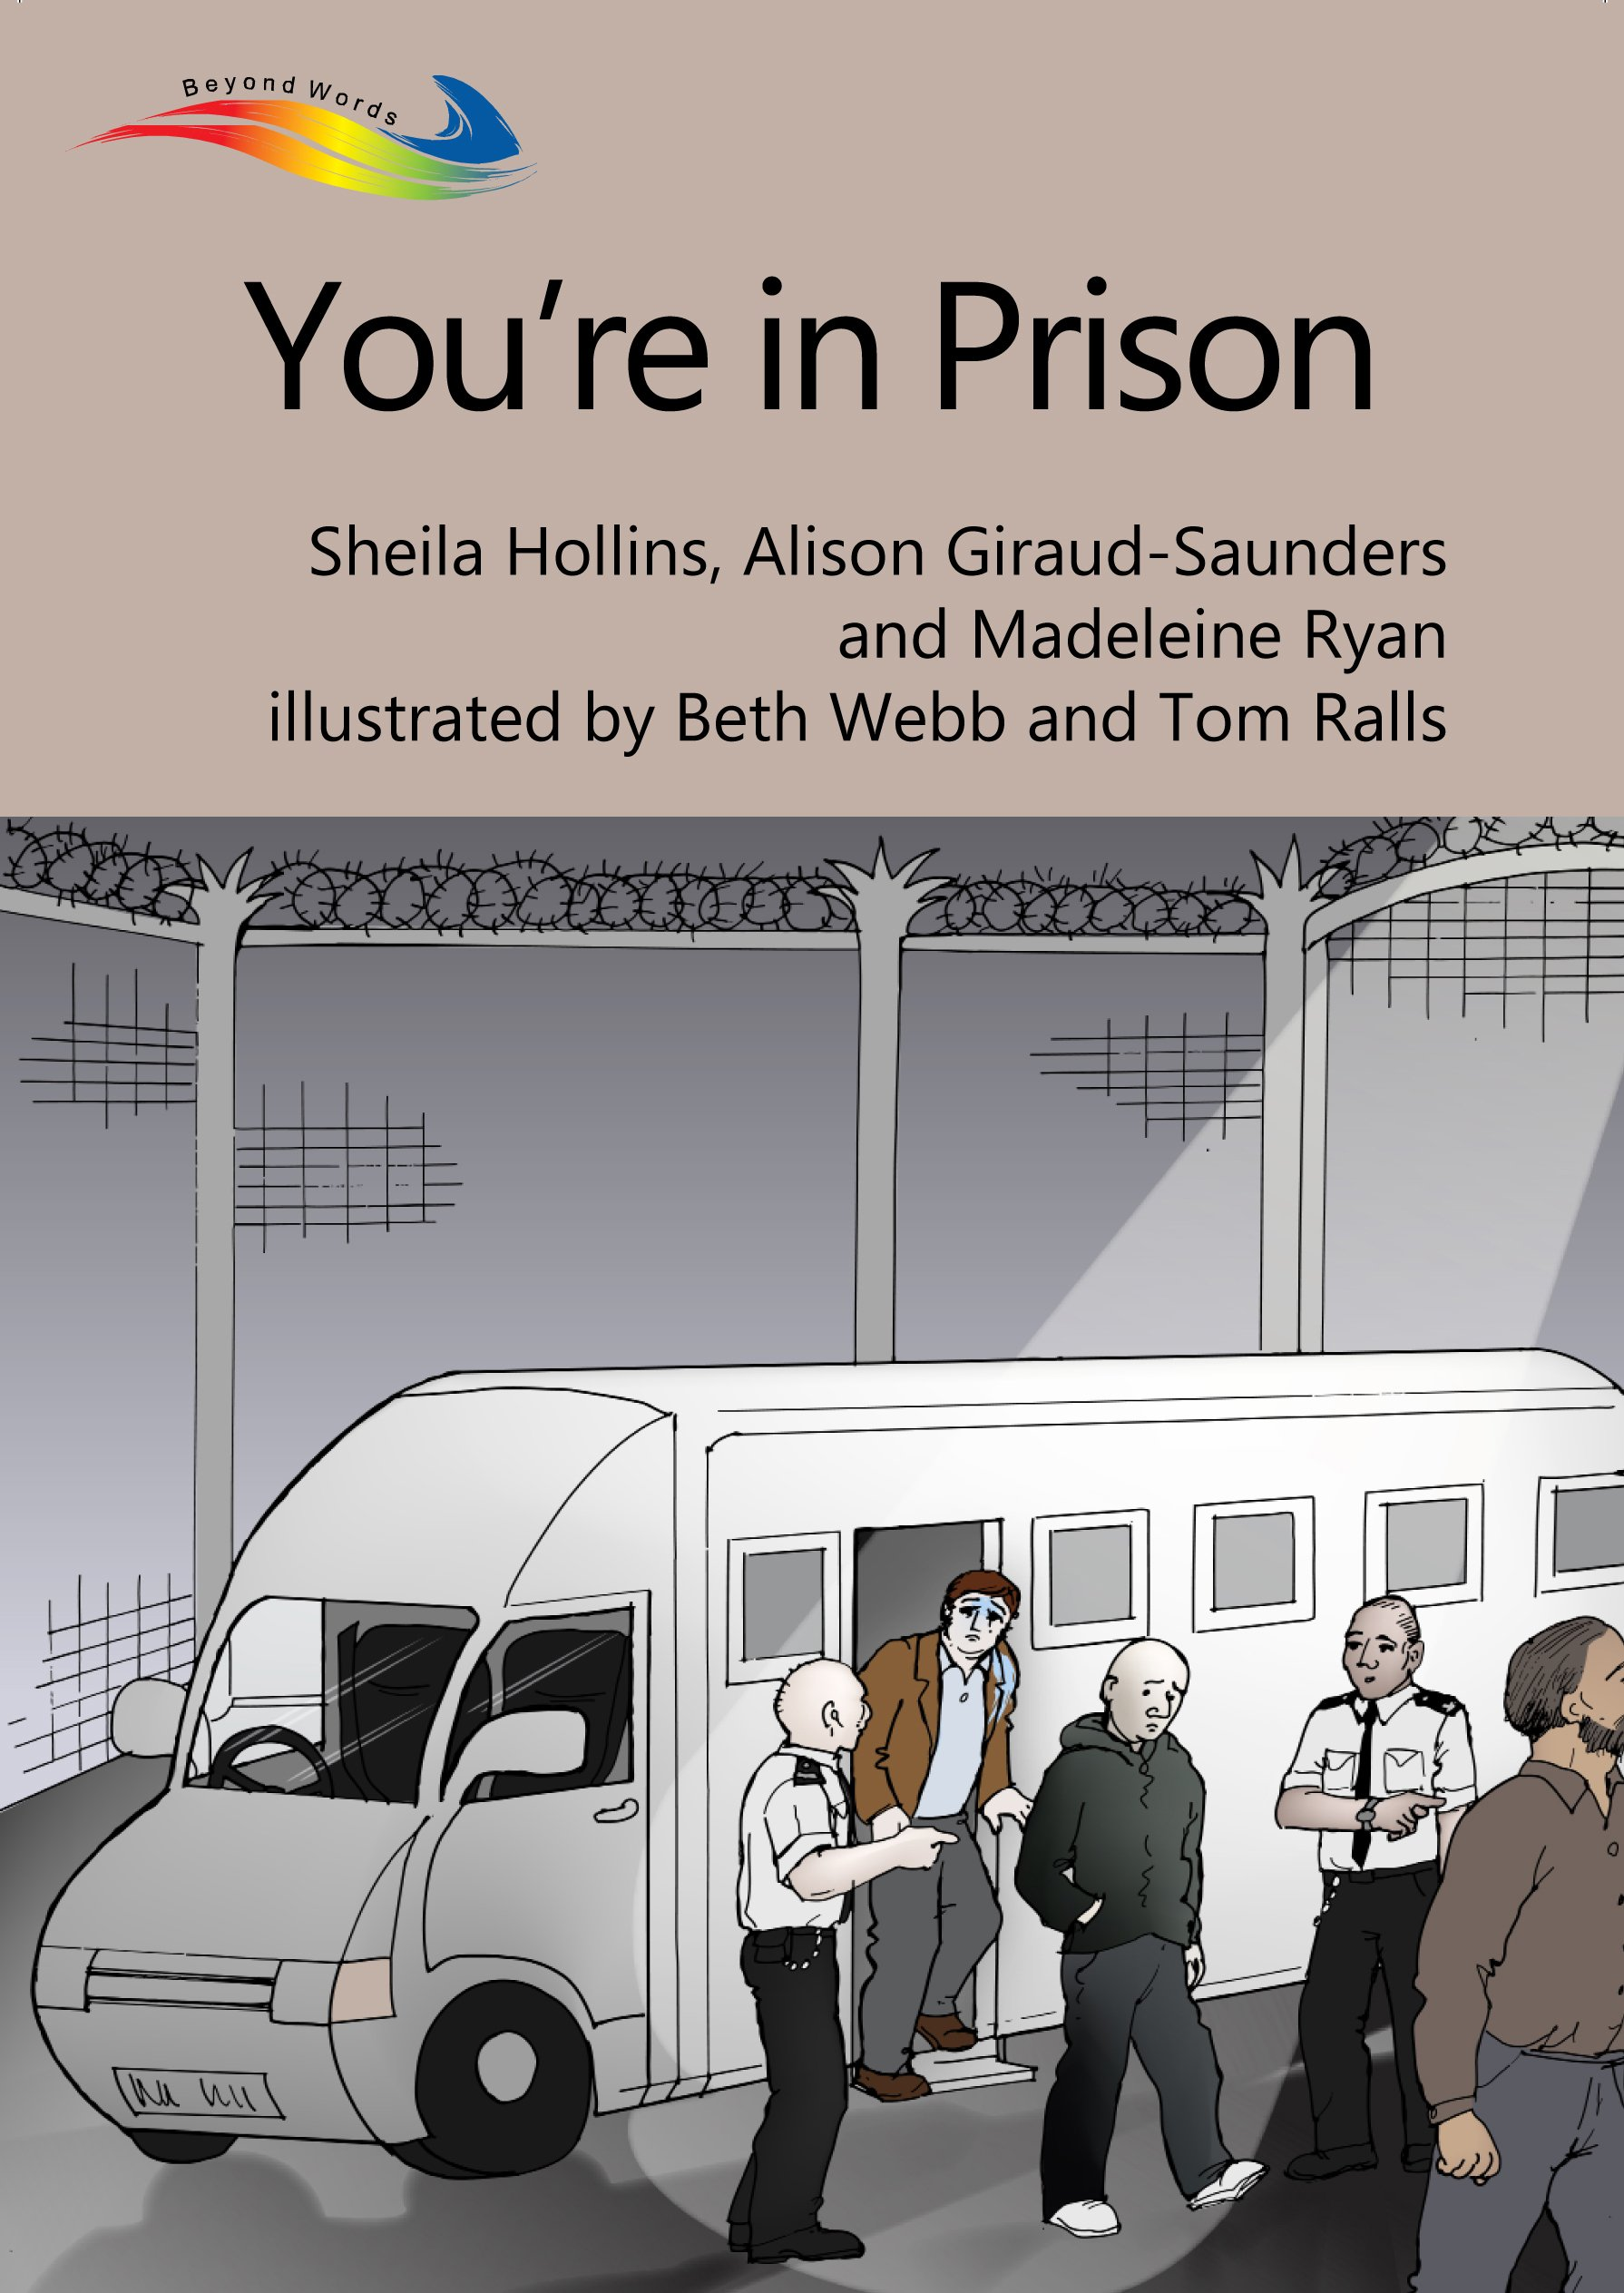 Youre in Prison (Books Beyond Words)